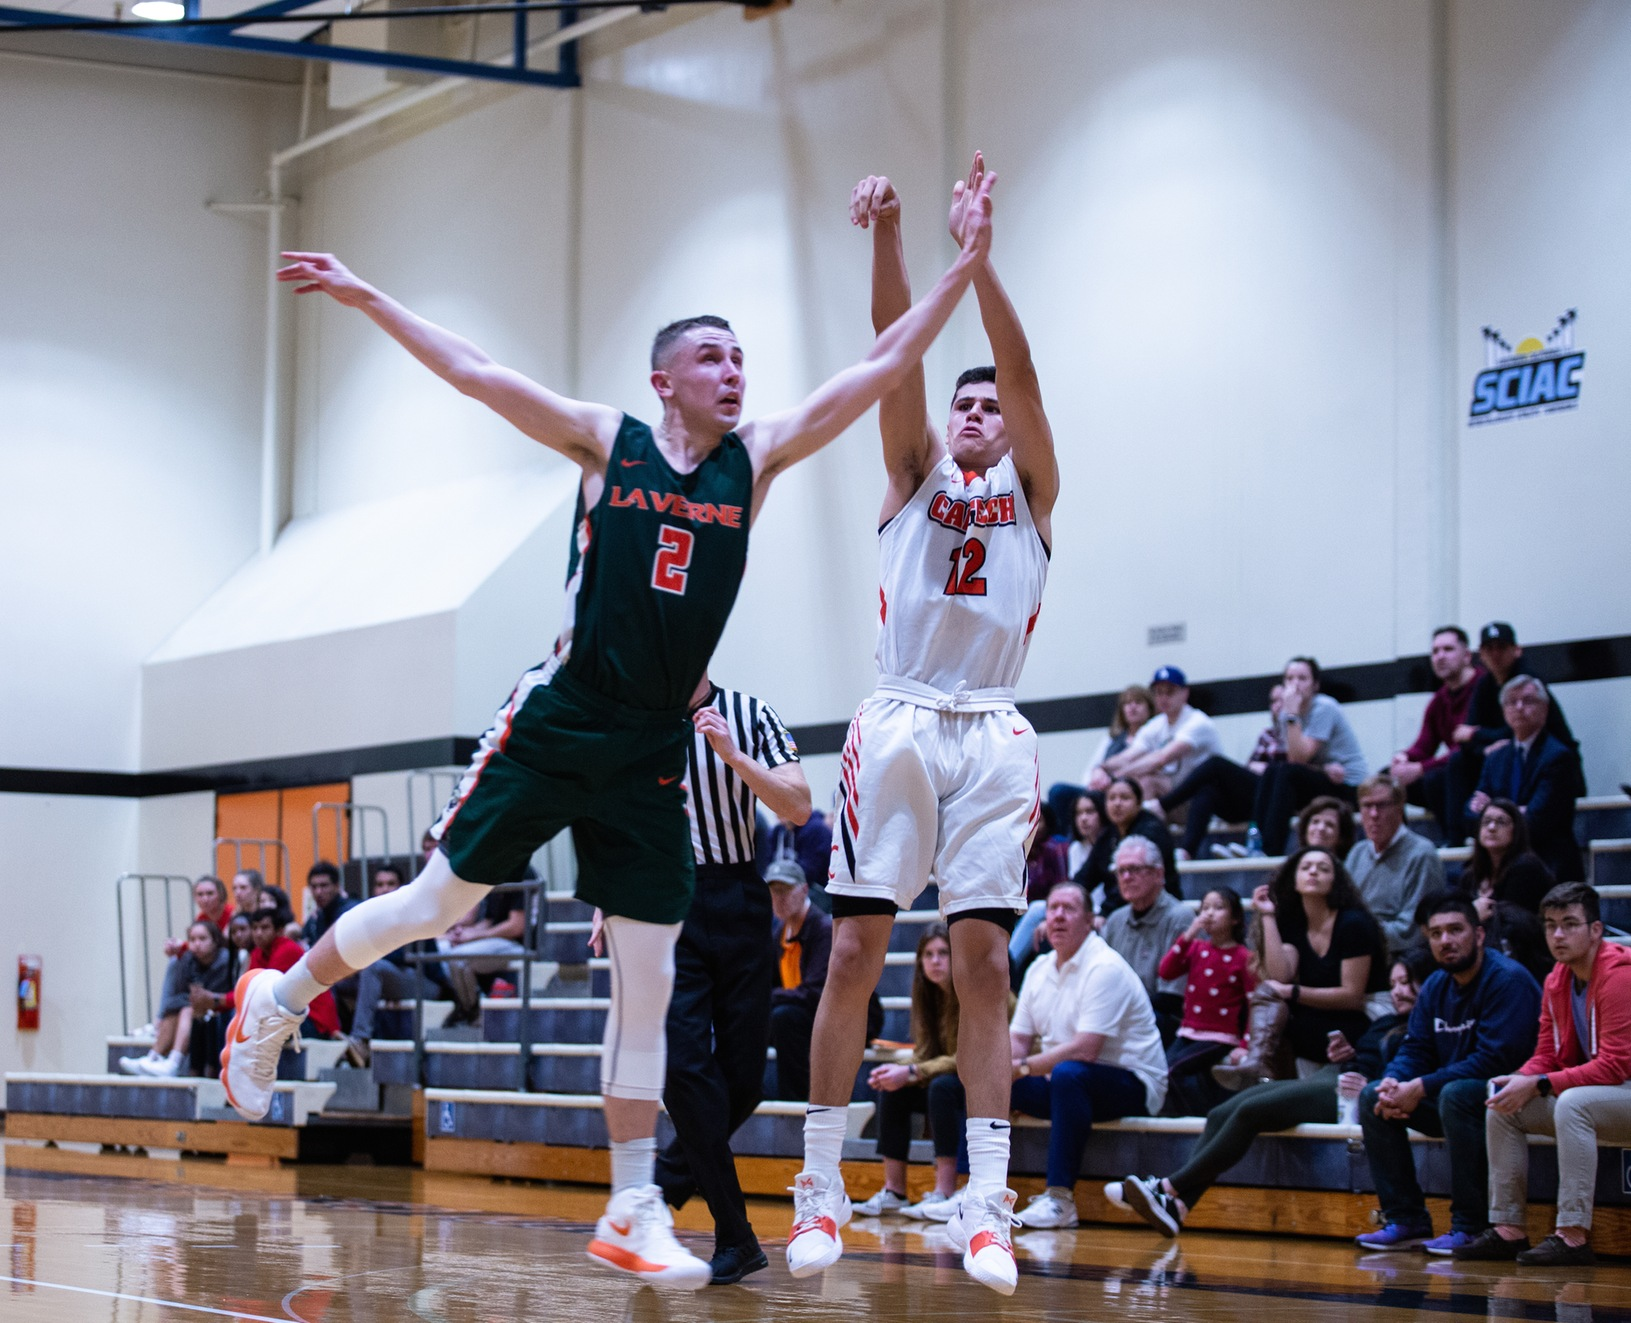 Caltech Holds Redlands Under Average